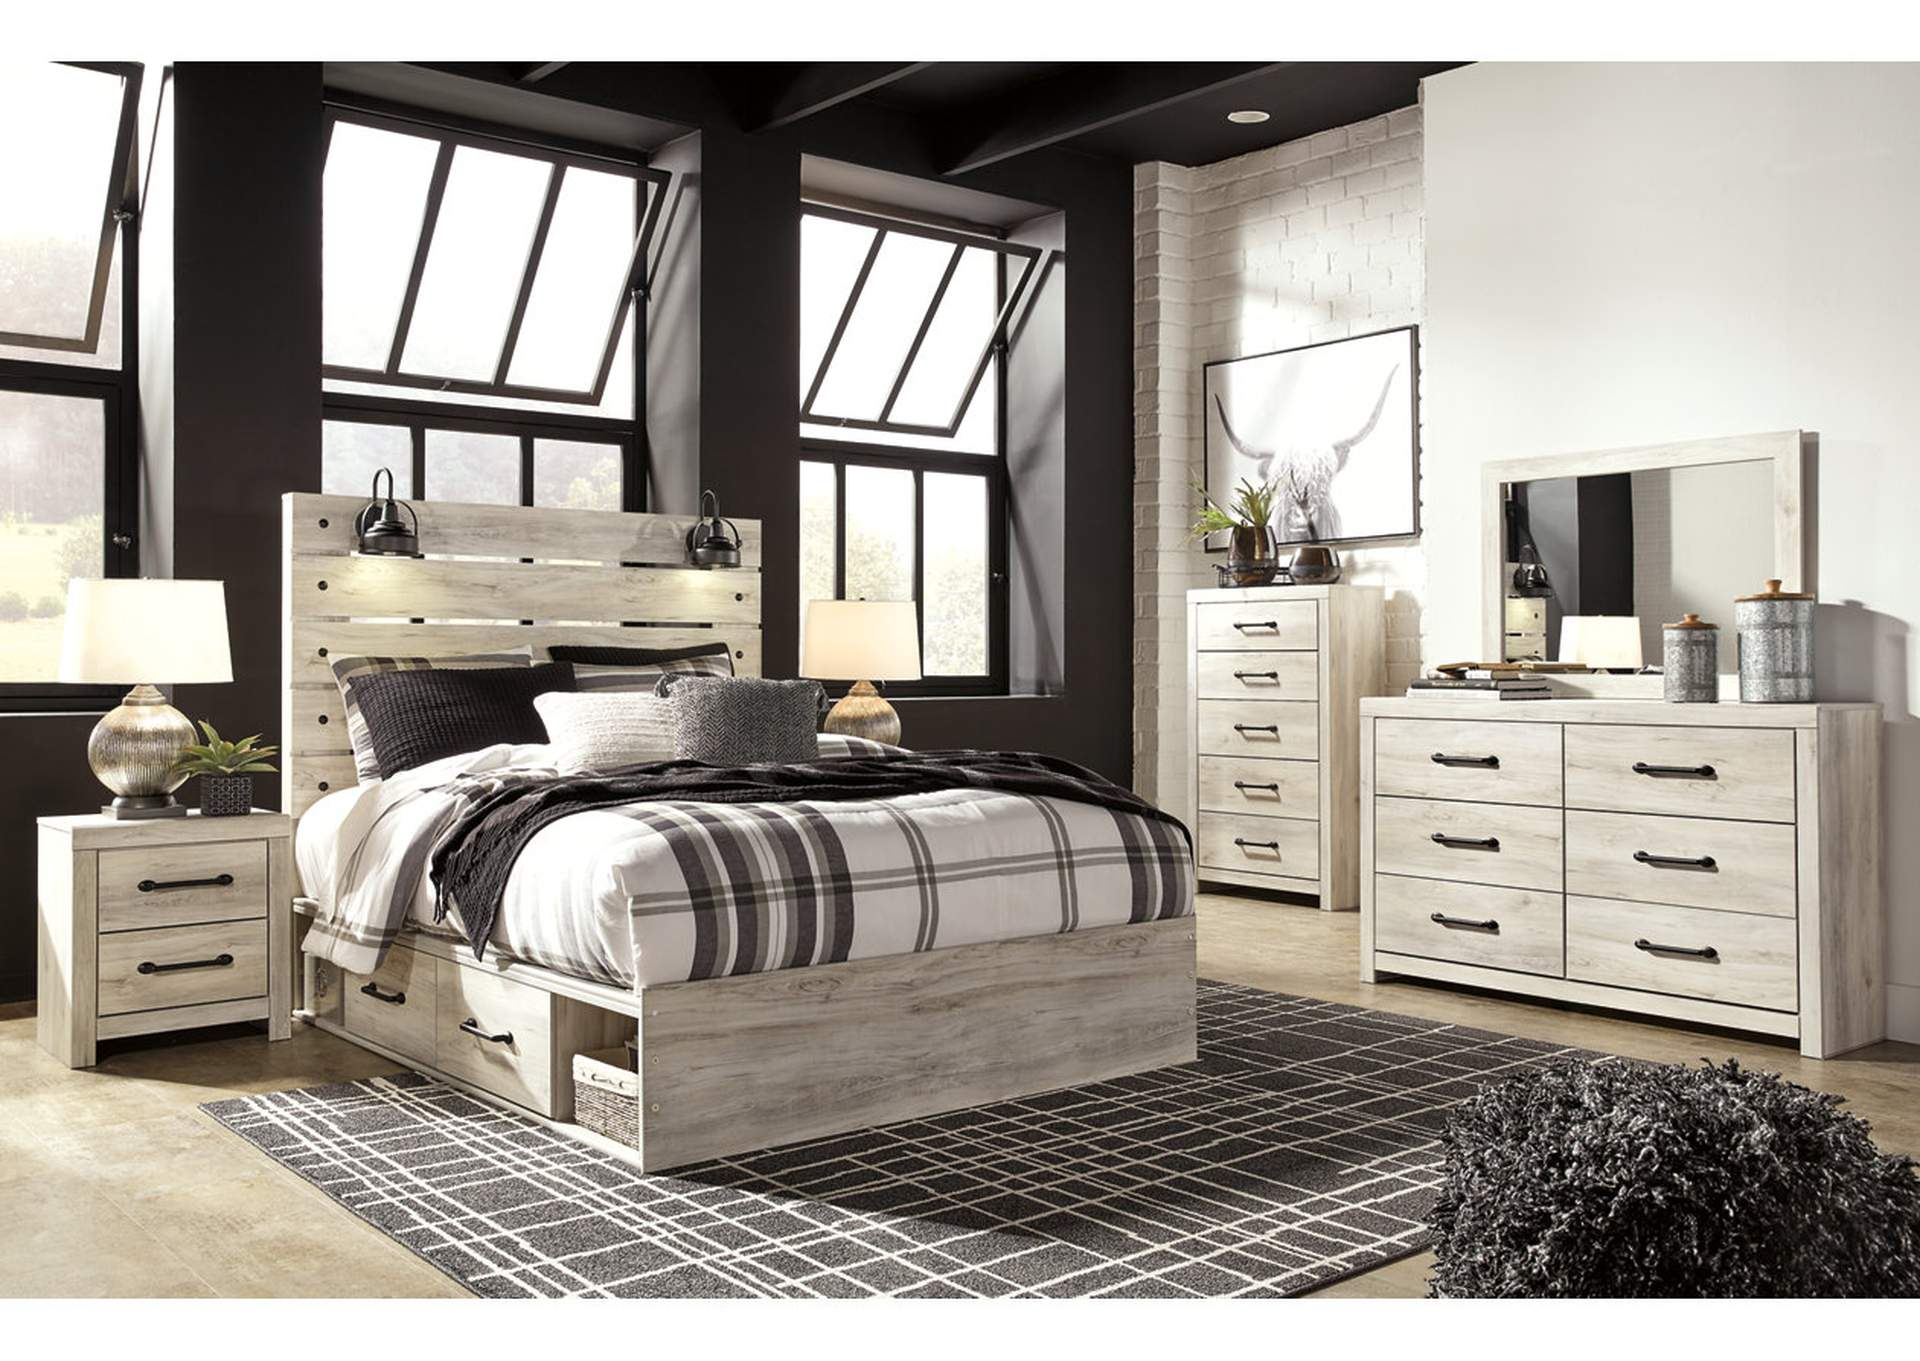 Cambeck Queen Panel Bed with 4 Side Storage Drawers, Dresser and Mirror,Signature Design By Ashley